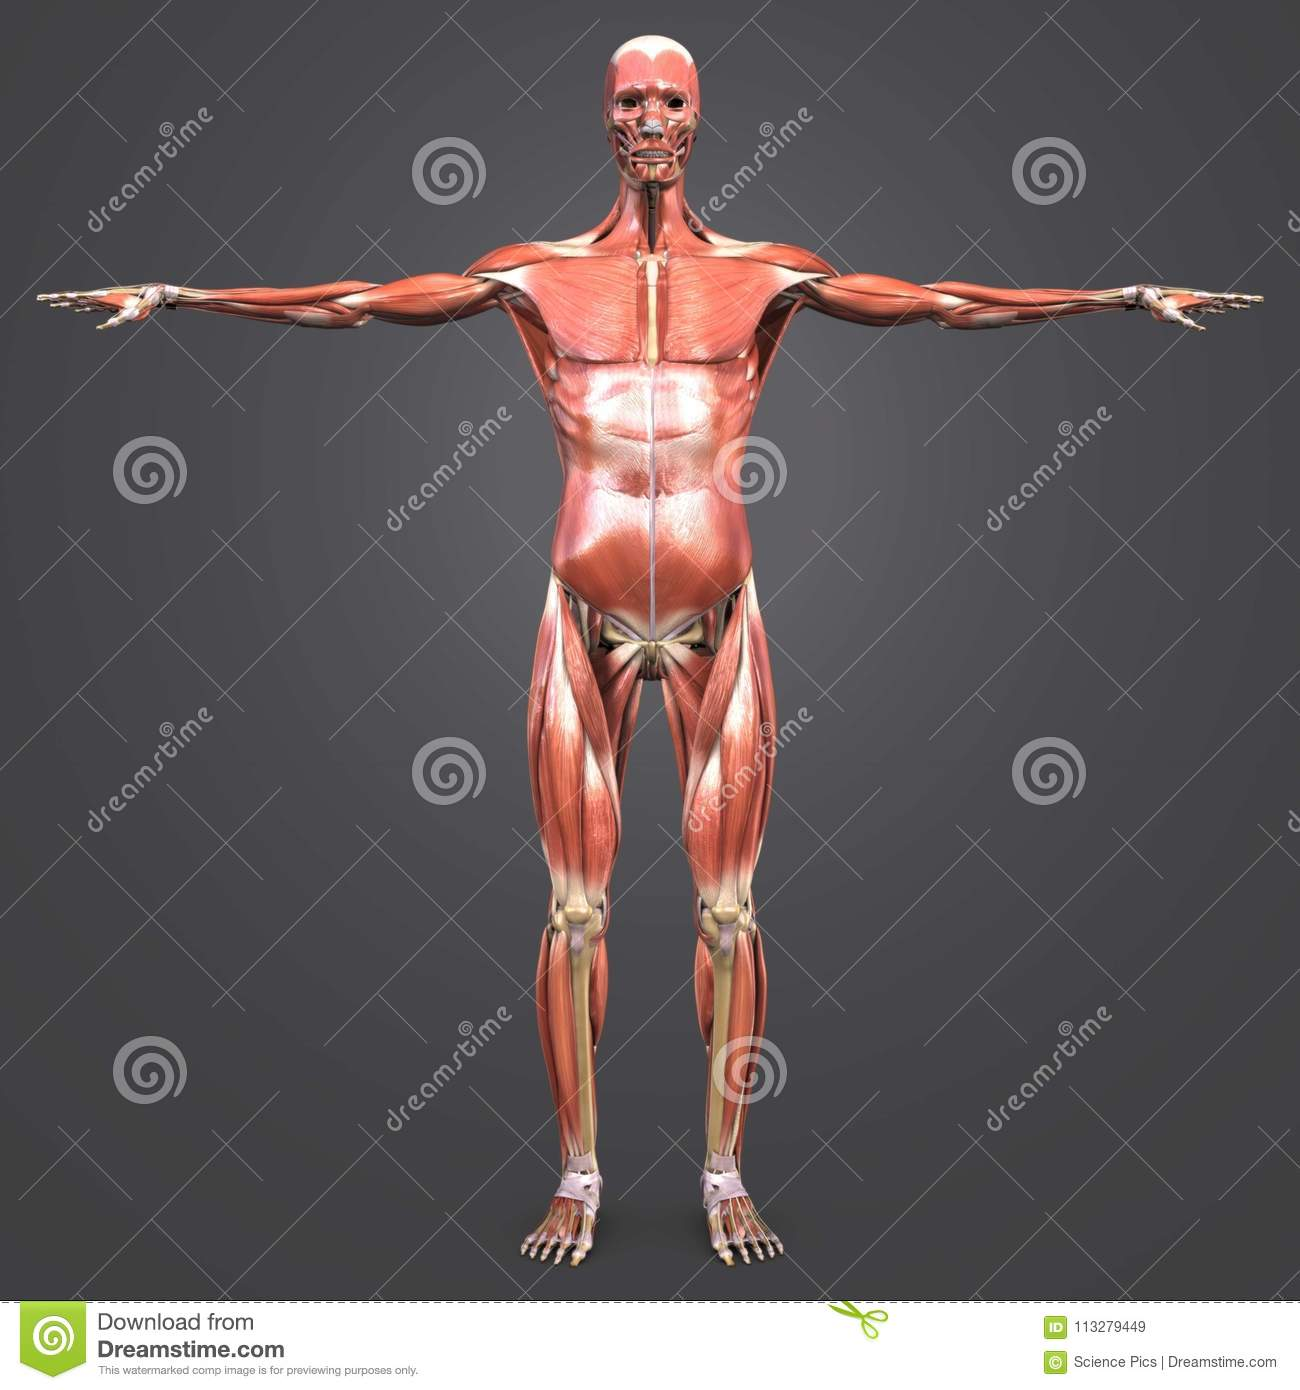 Human Muscular Anatomy With Skeleton Anterior View Stock